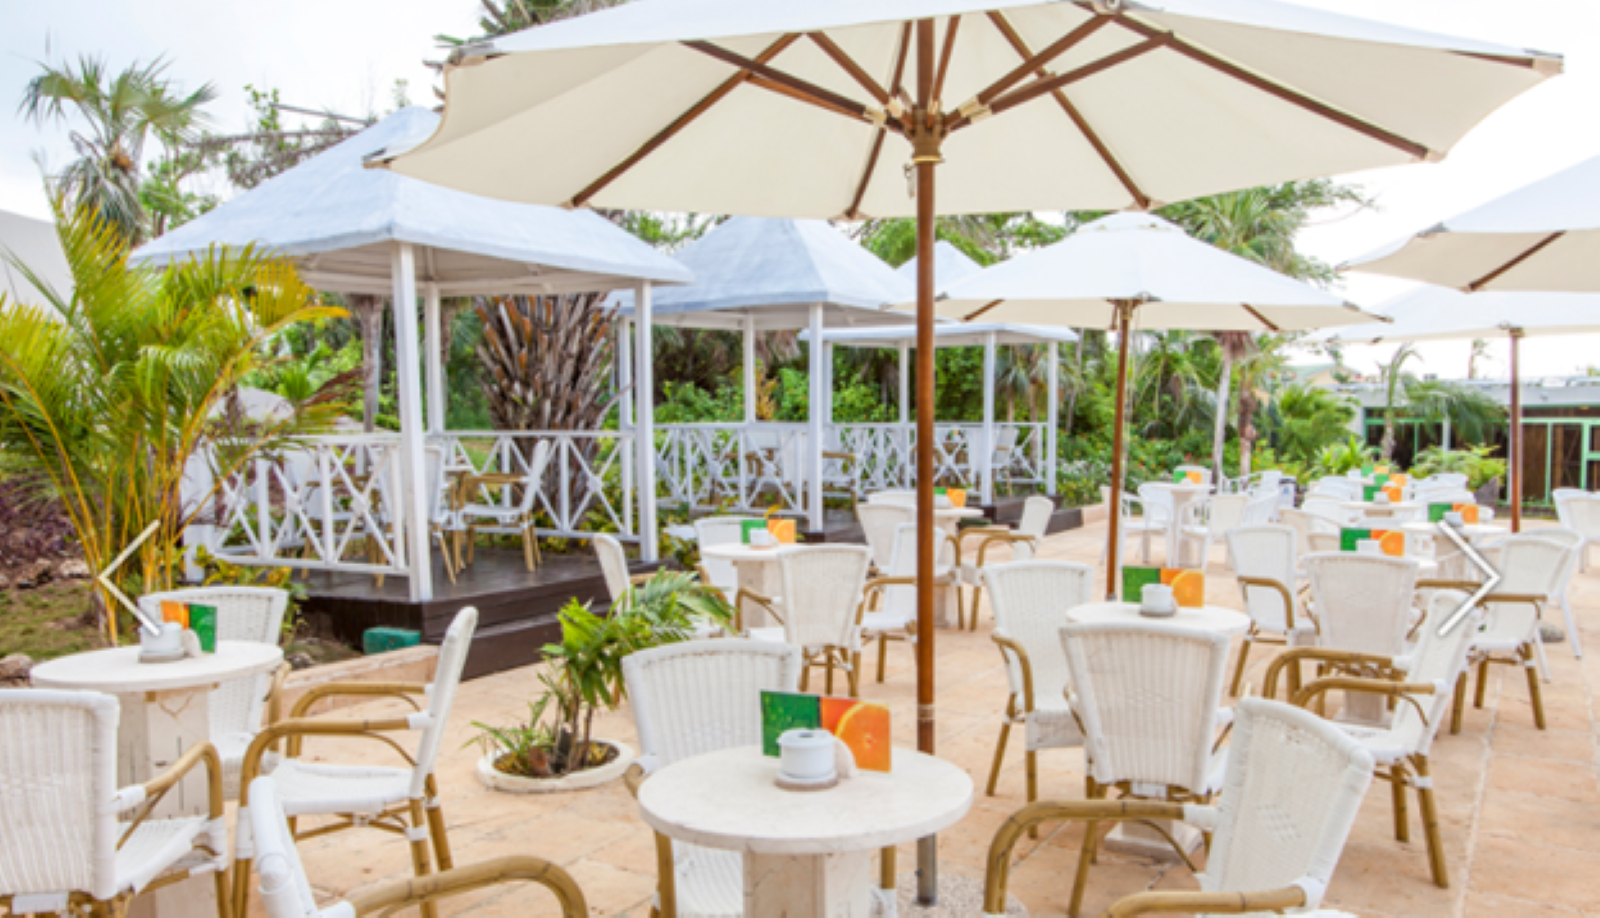 Outdoor dining with raised private dining areas set off to the left, the tables, chairs, and umbrellas are all white with wood accents